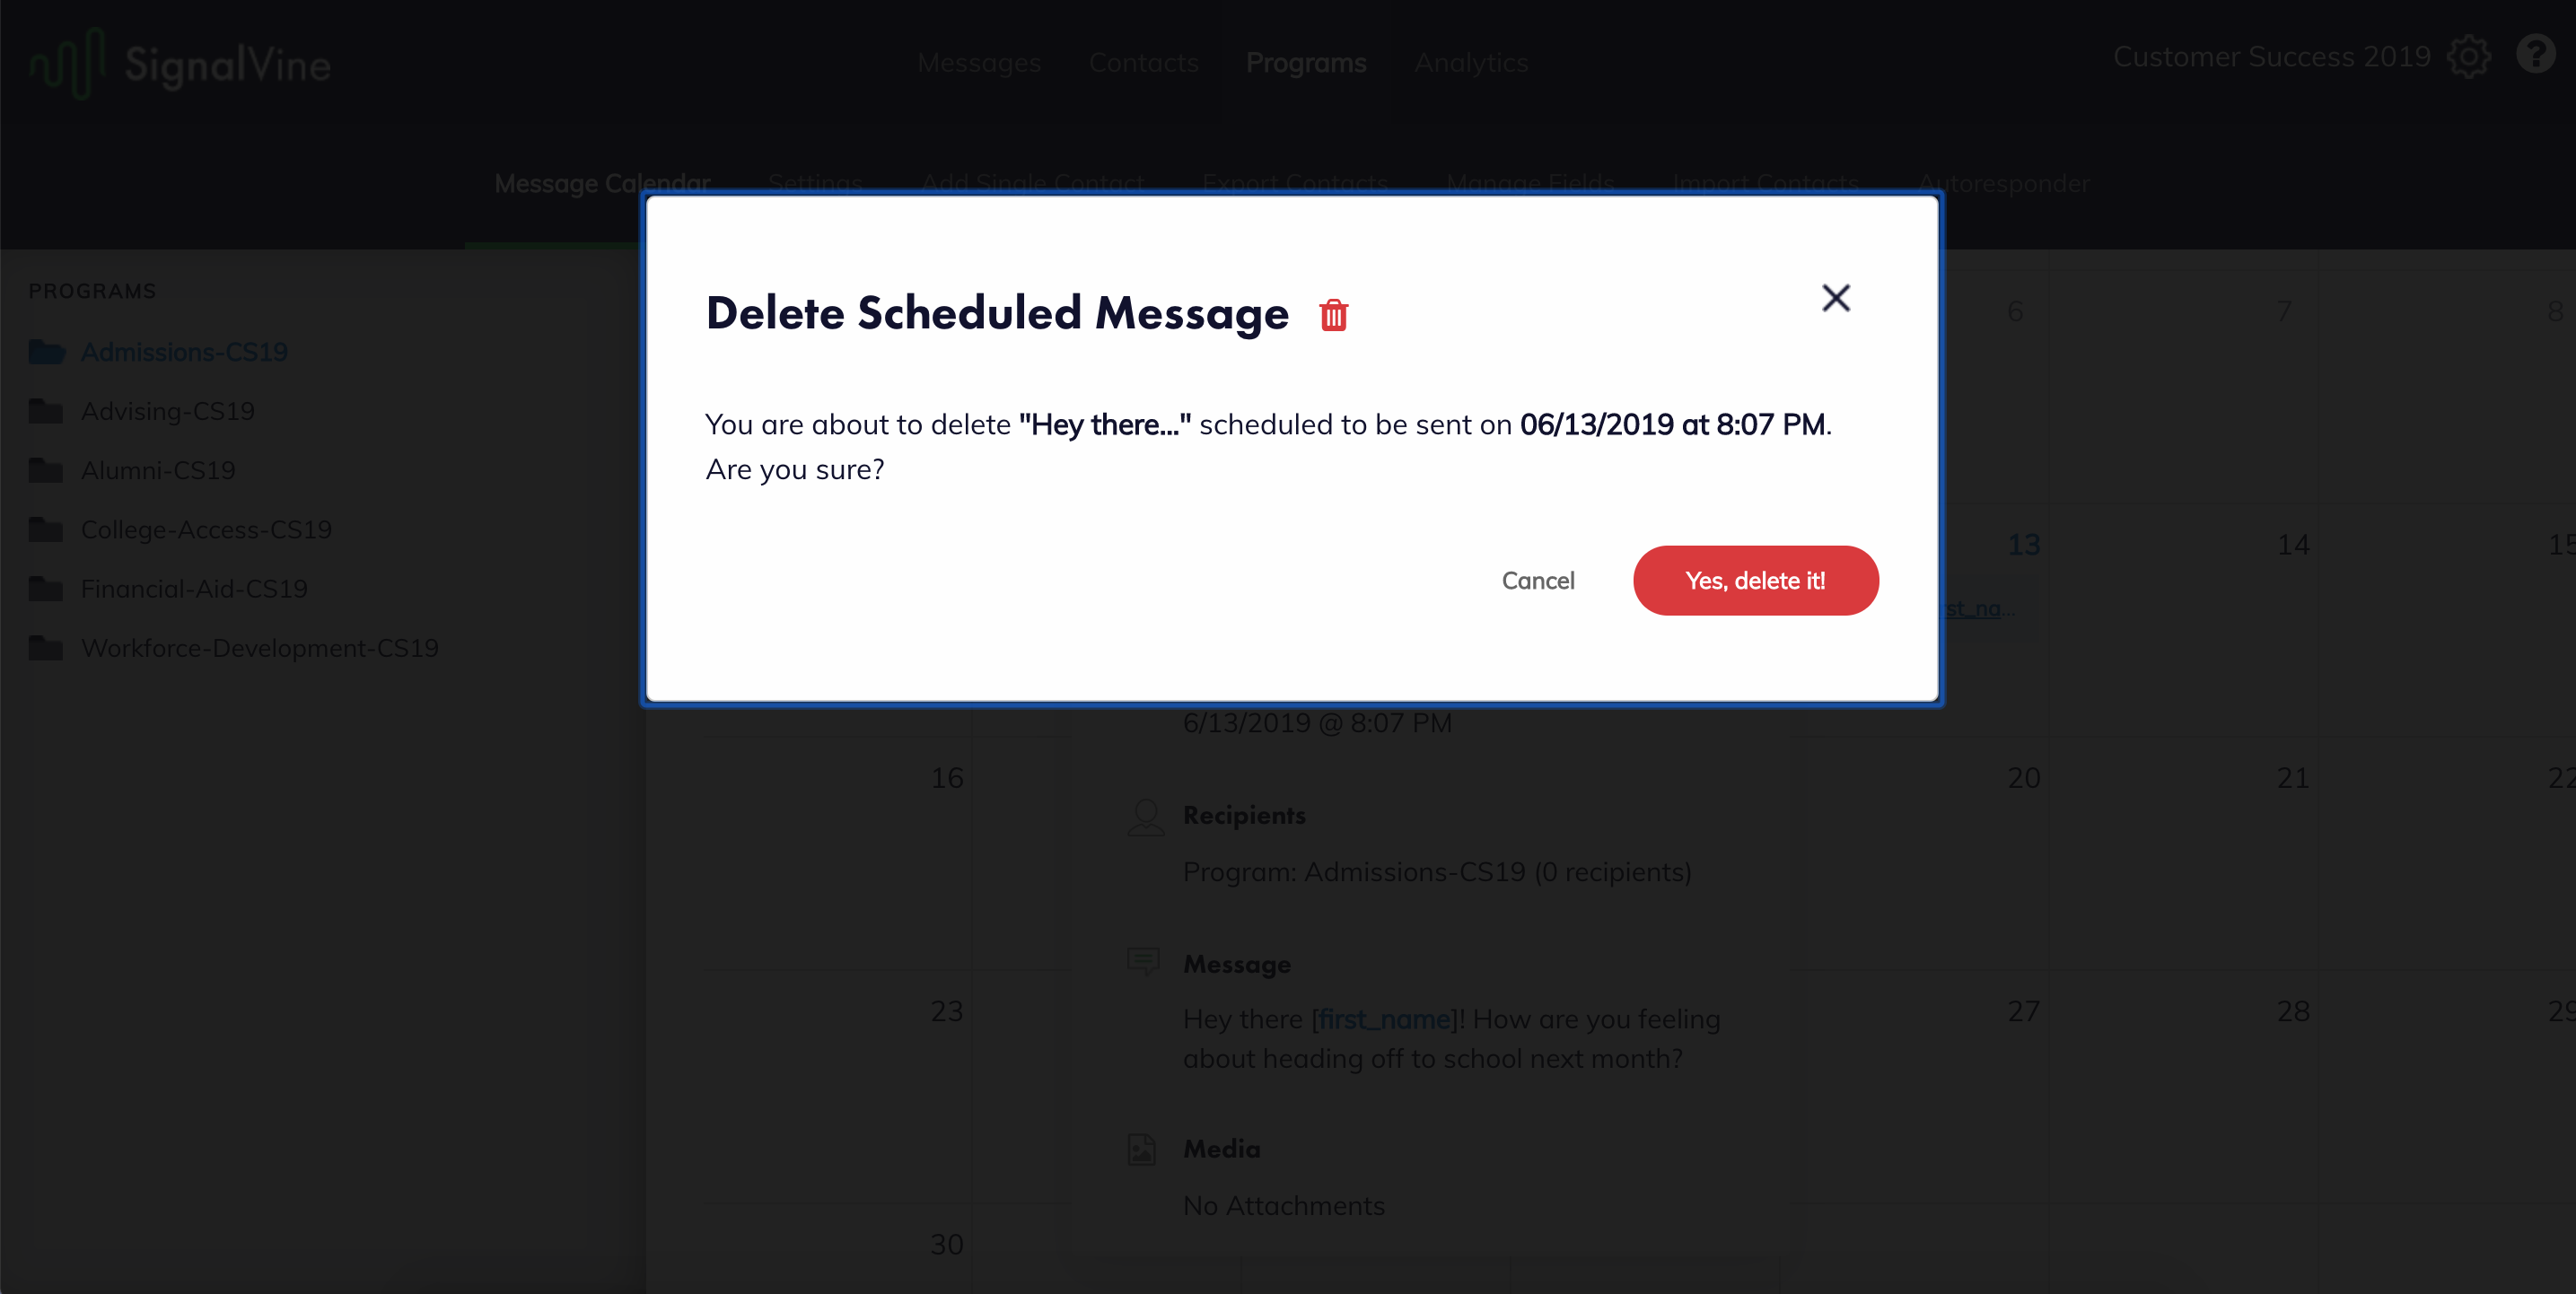 image of confirmation page to affirm intent to delete message